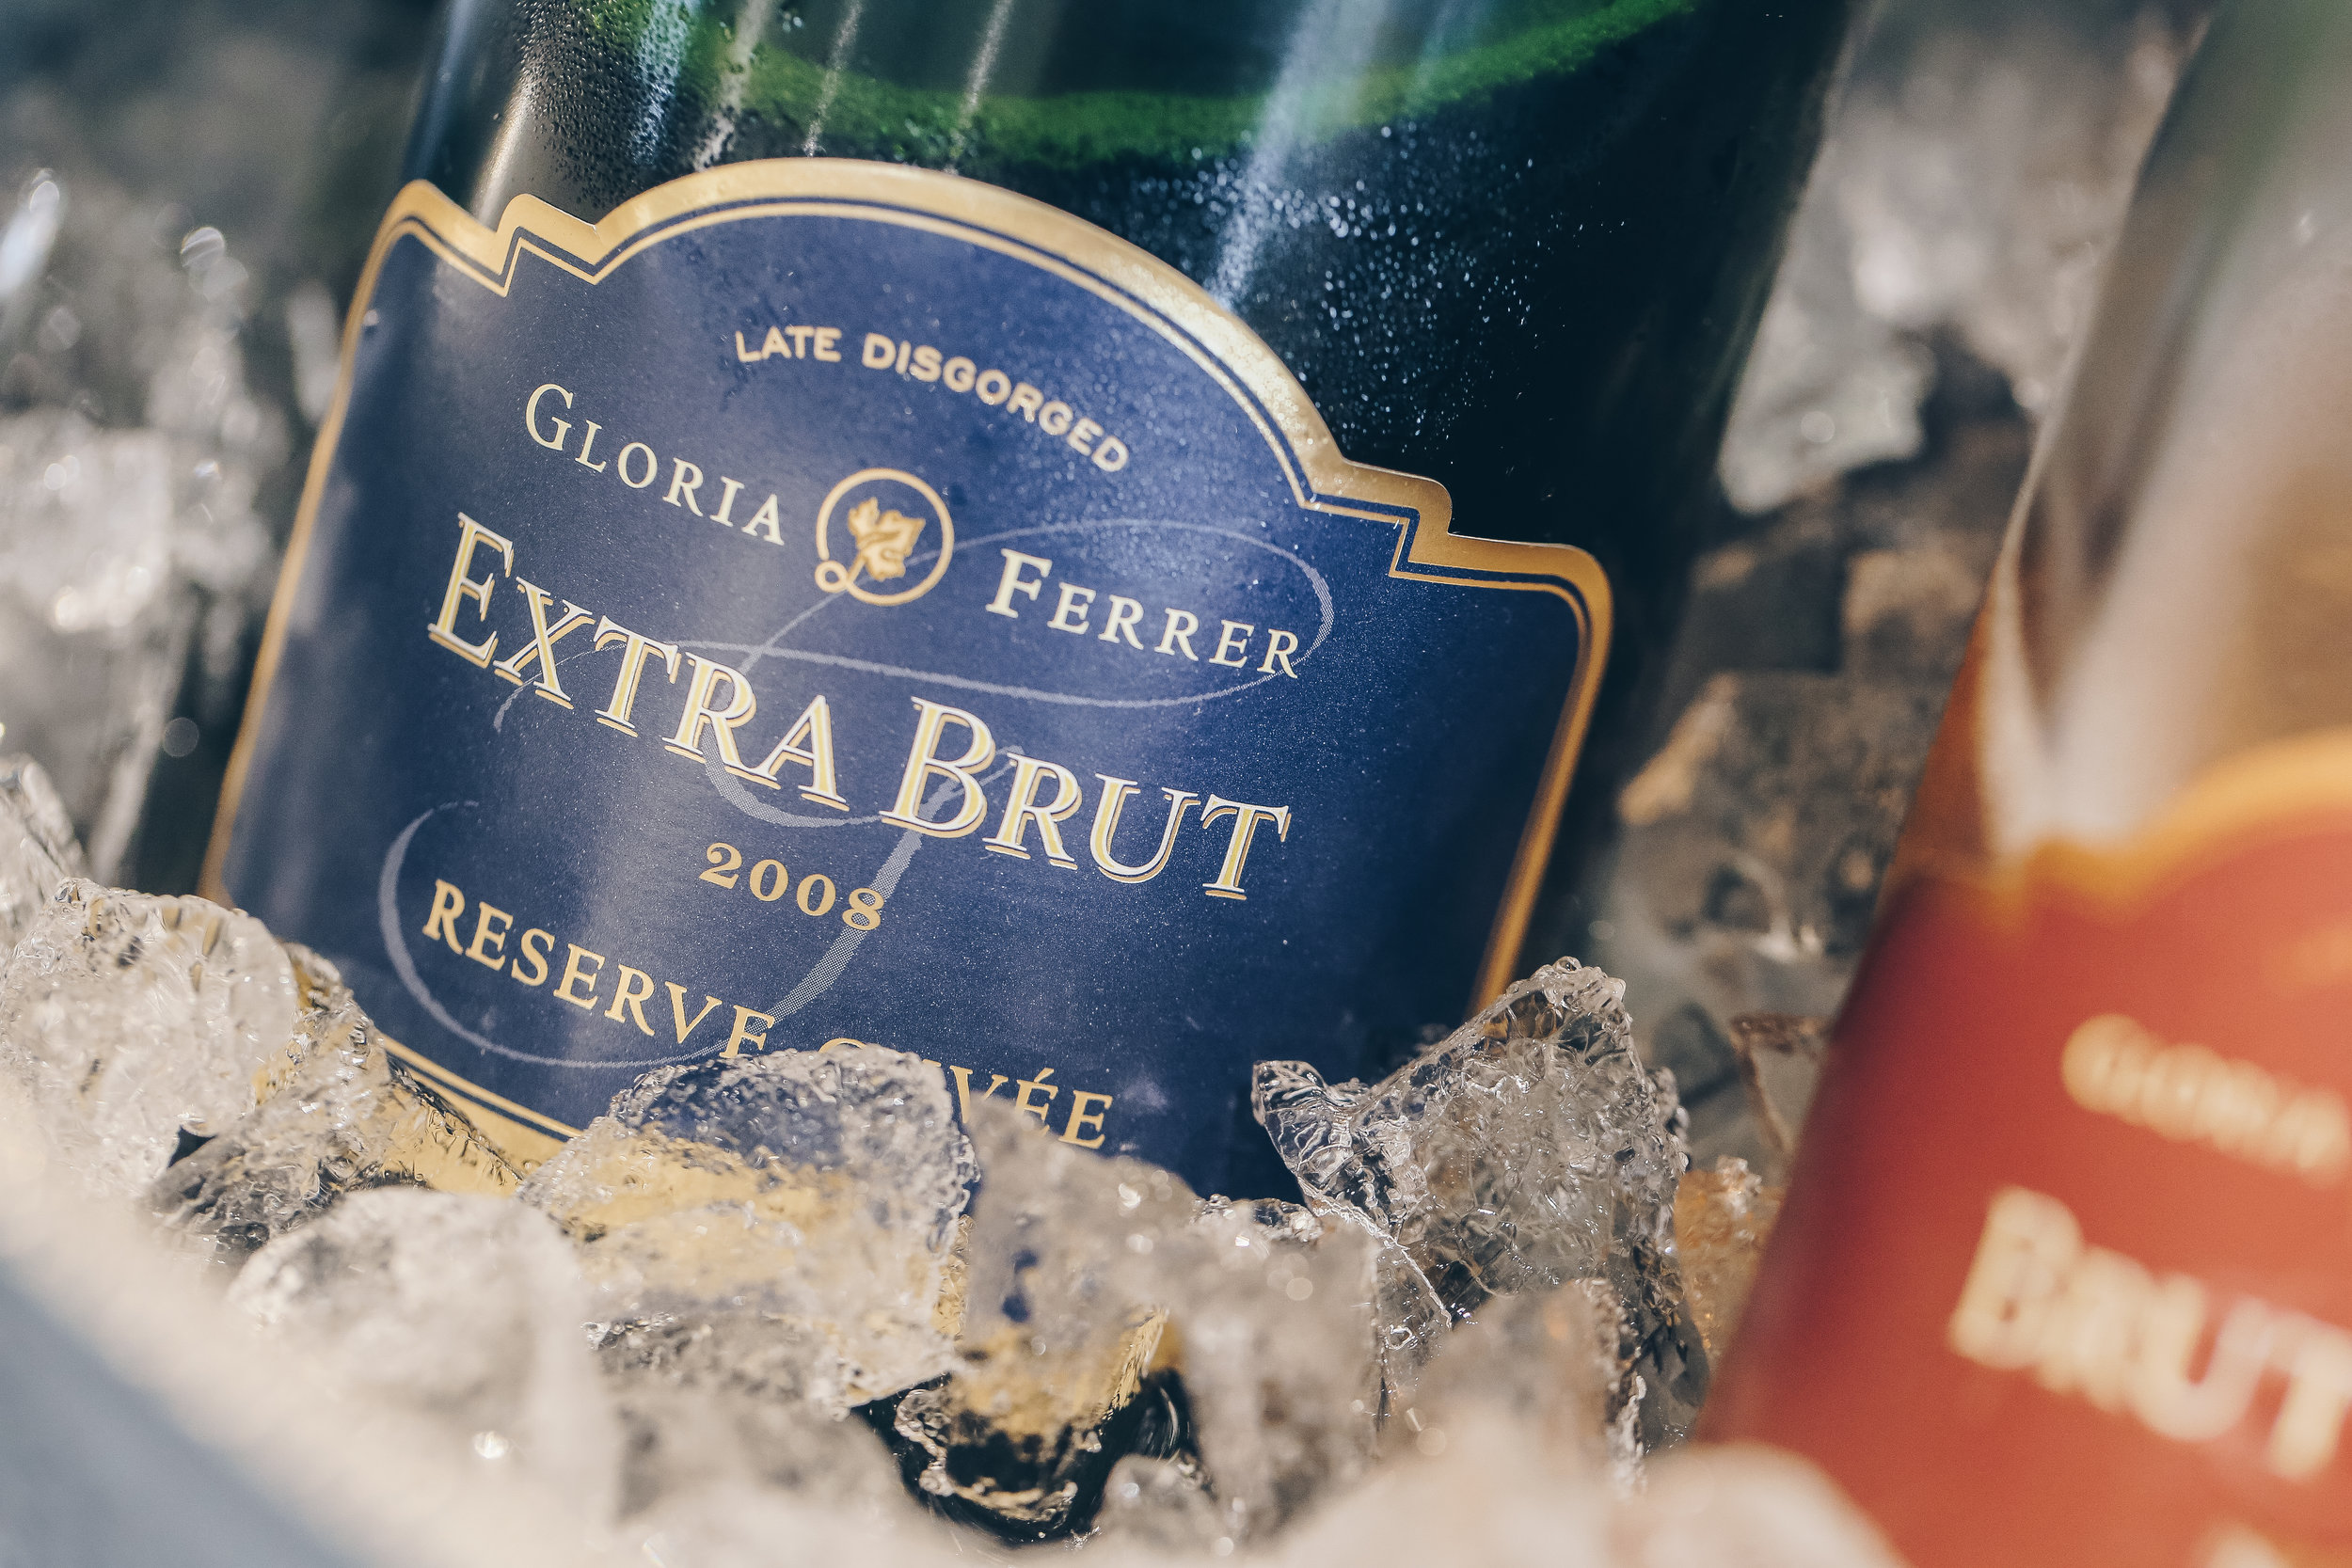 Gloria Ferrer 2008 Extra Brut - this award winning wine bursts with crisp,bright flavors. With hints of apple and ginger to cleanse the palate, the Extra Brut is everything you could ask for out of a traditional sparkling wine.